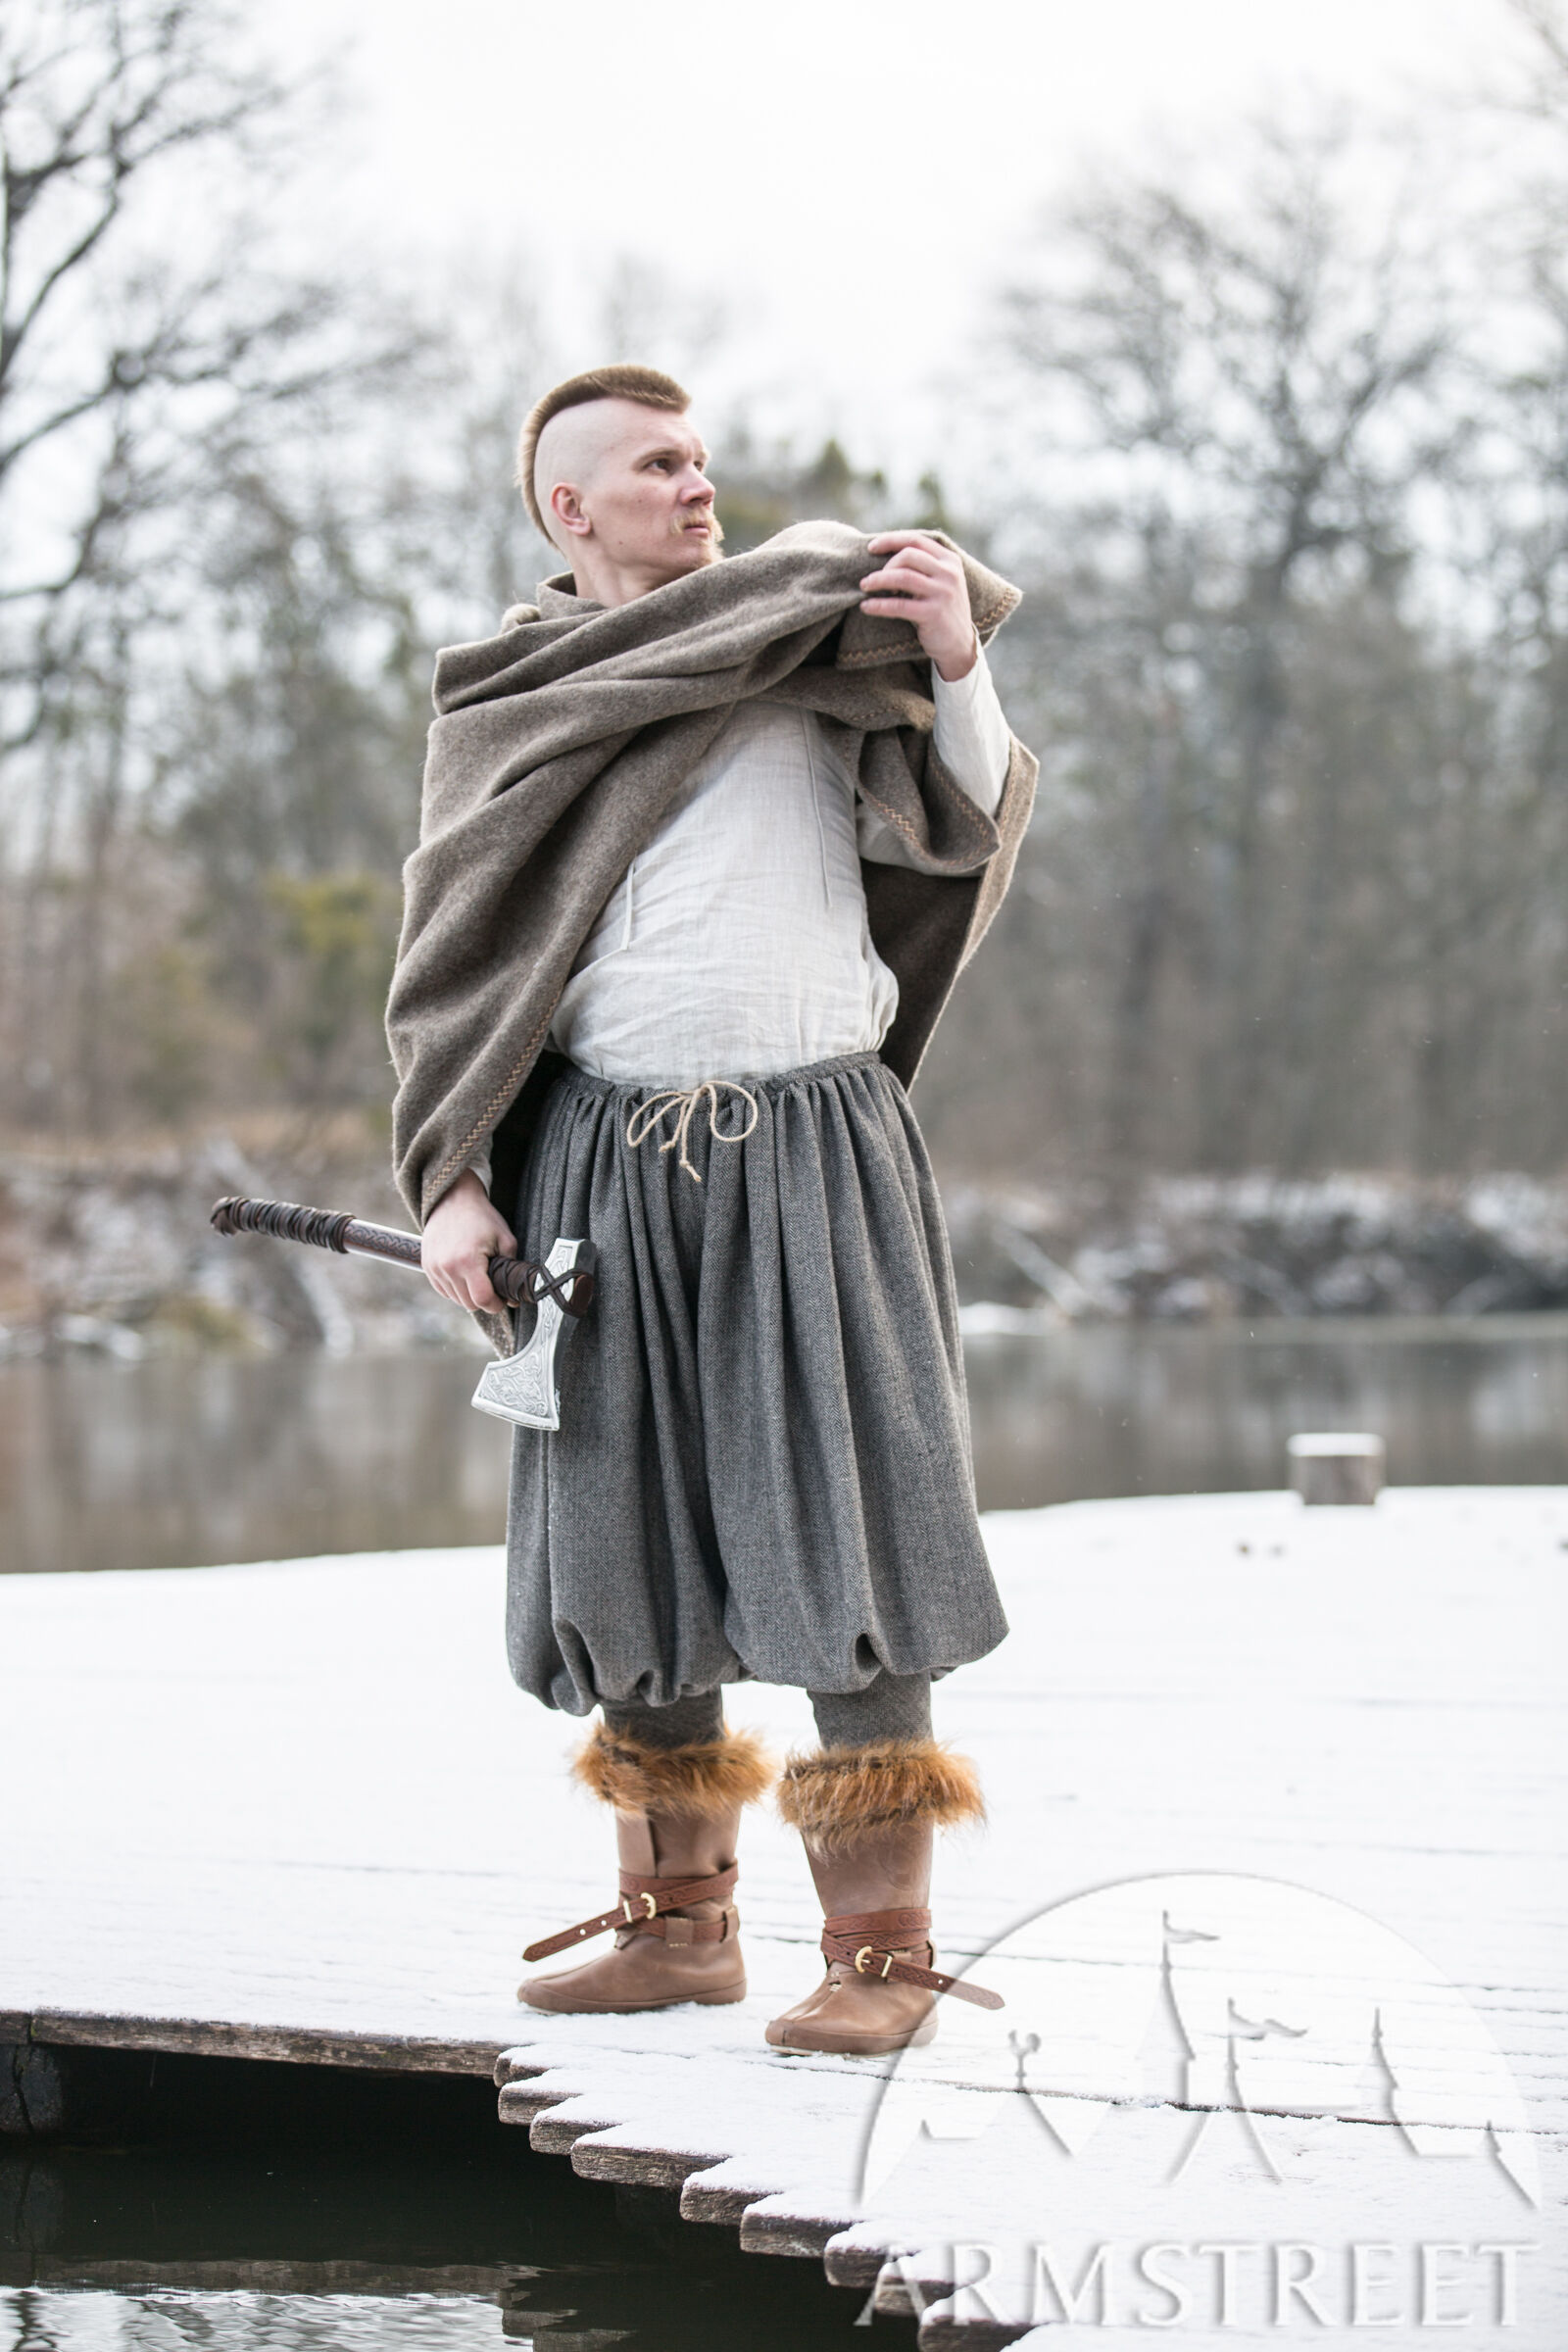 Wool Blend Viking Pants Olegg The Mercenary For Sale